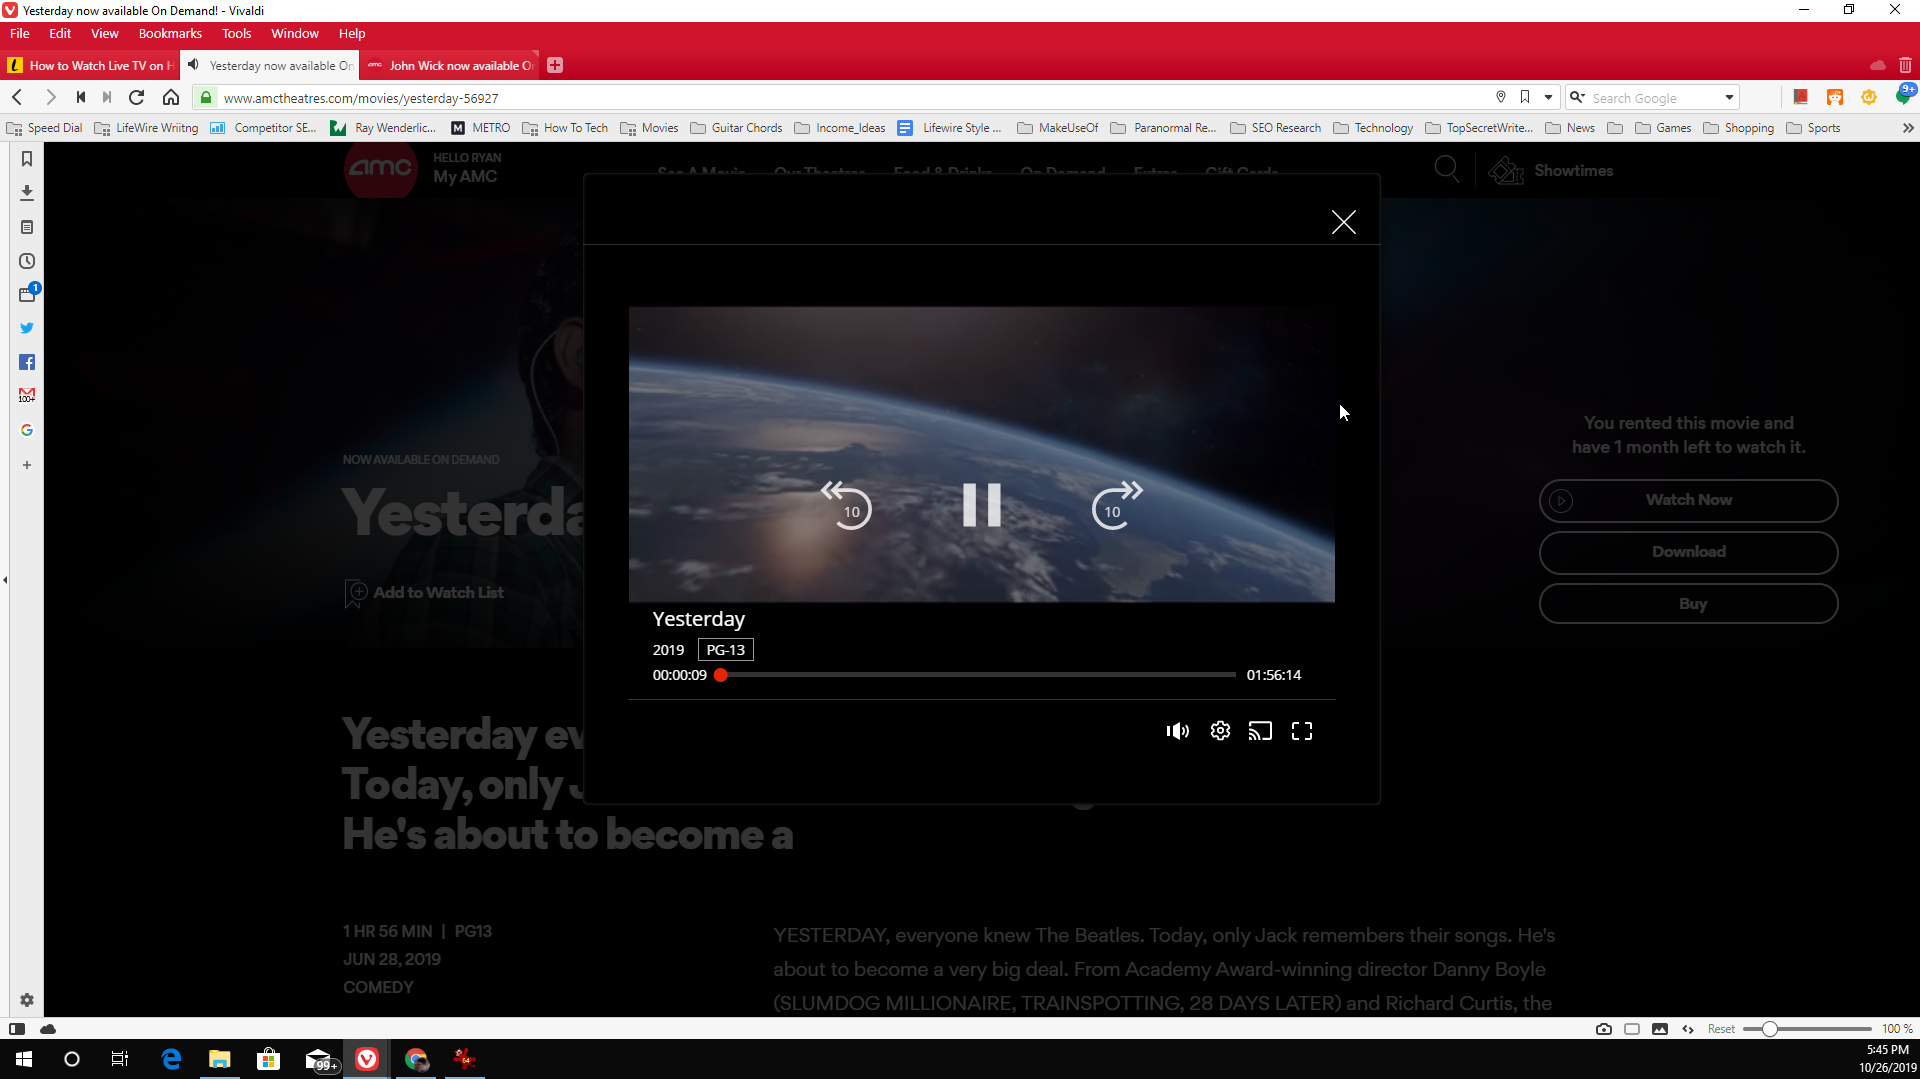 Screenshot of playing an AMC movie in your browser